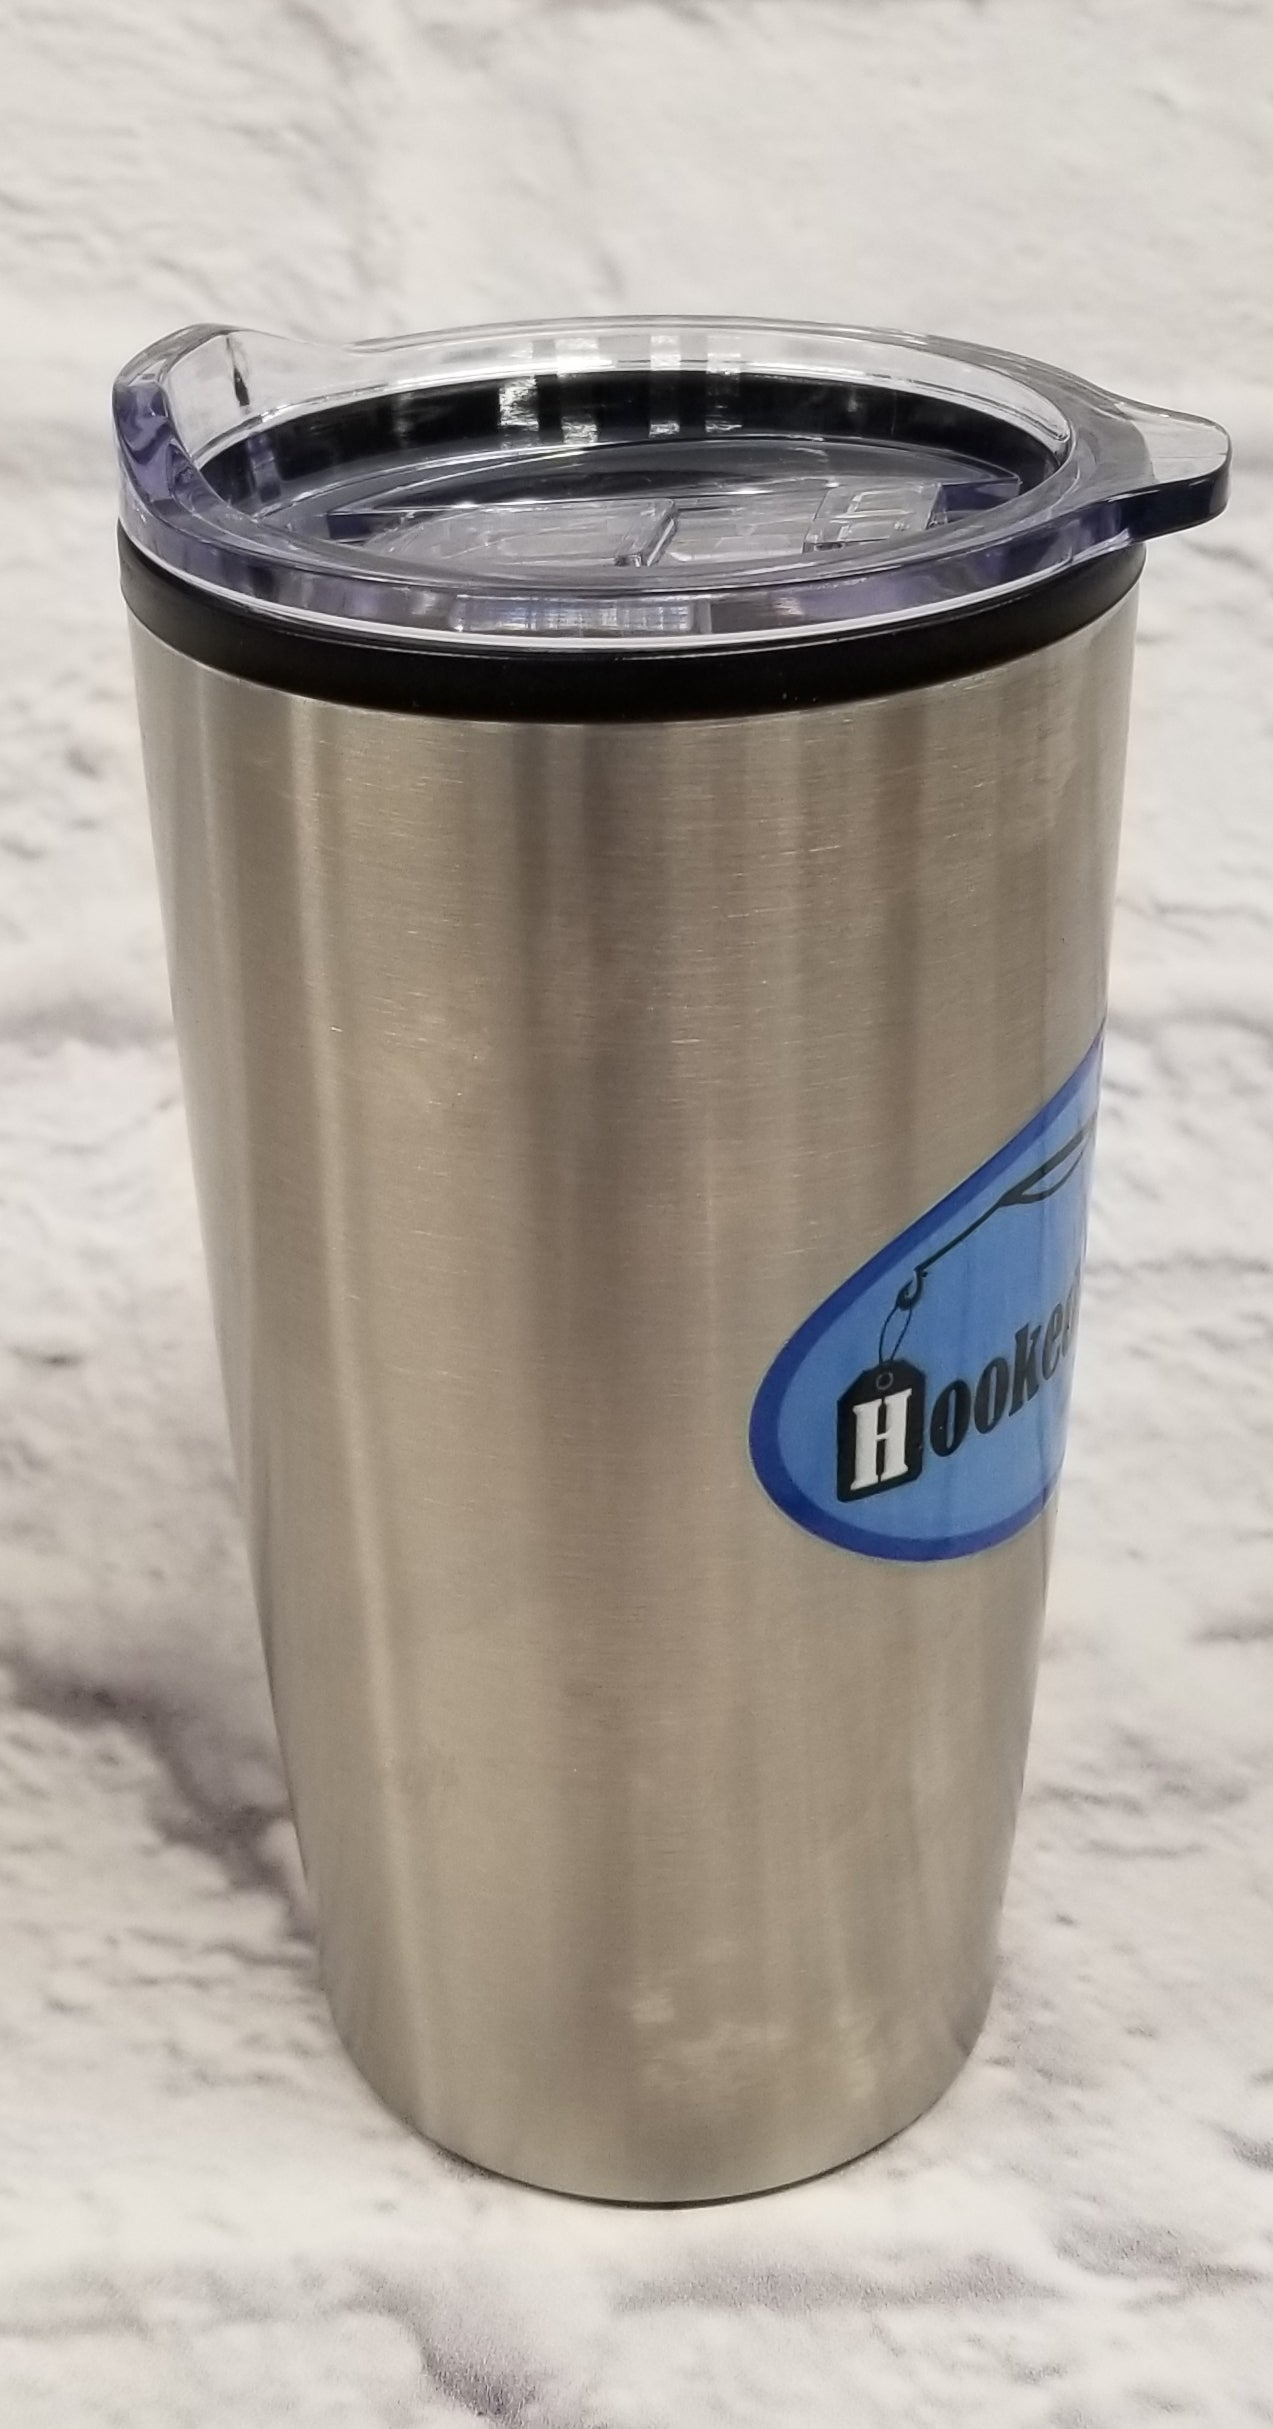 Hooked on Pickin' 20 oz Stainless Steel Tumbler